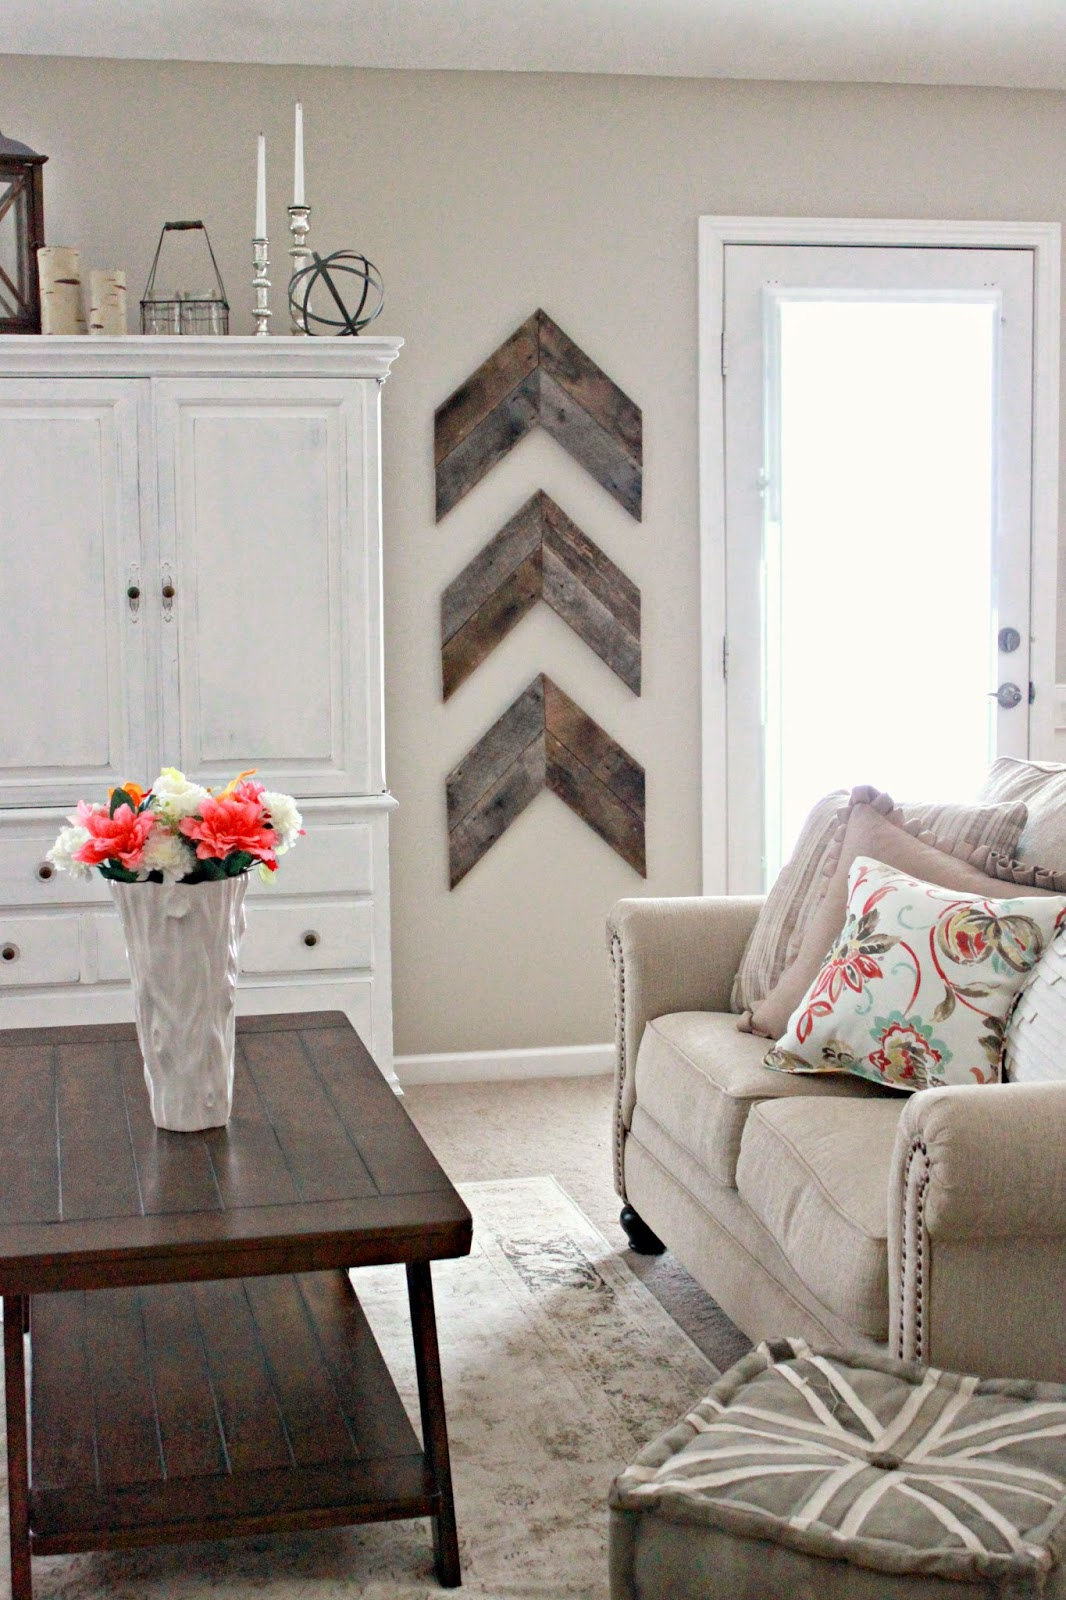 15 striking ways to decorate with arrows for Living room wall decor